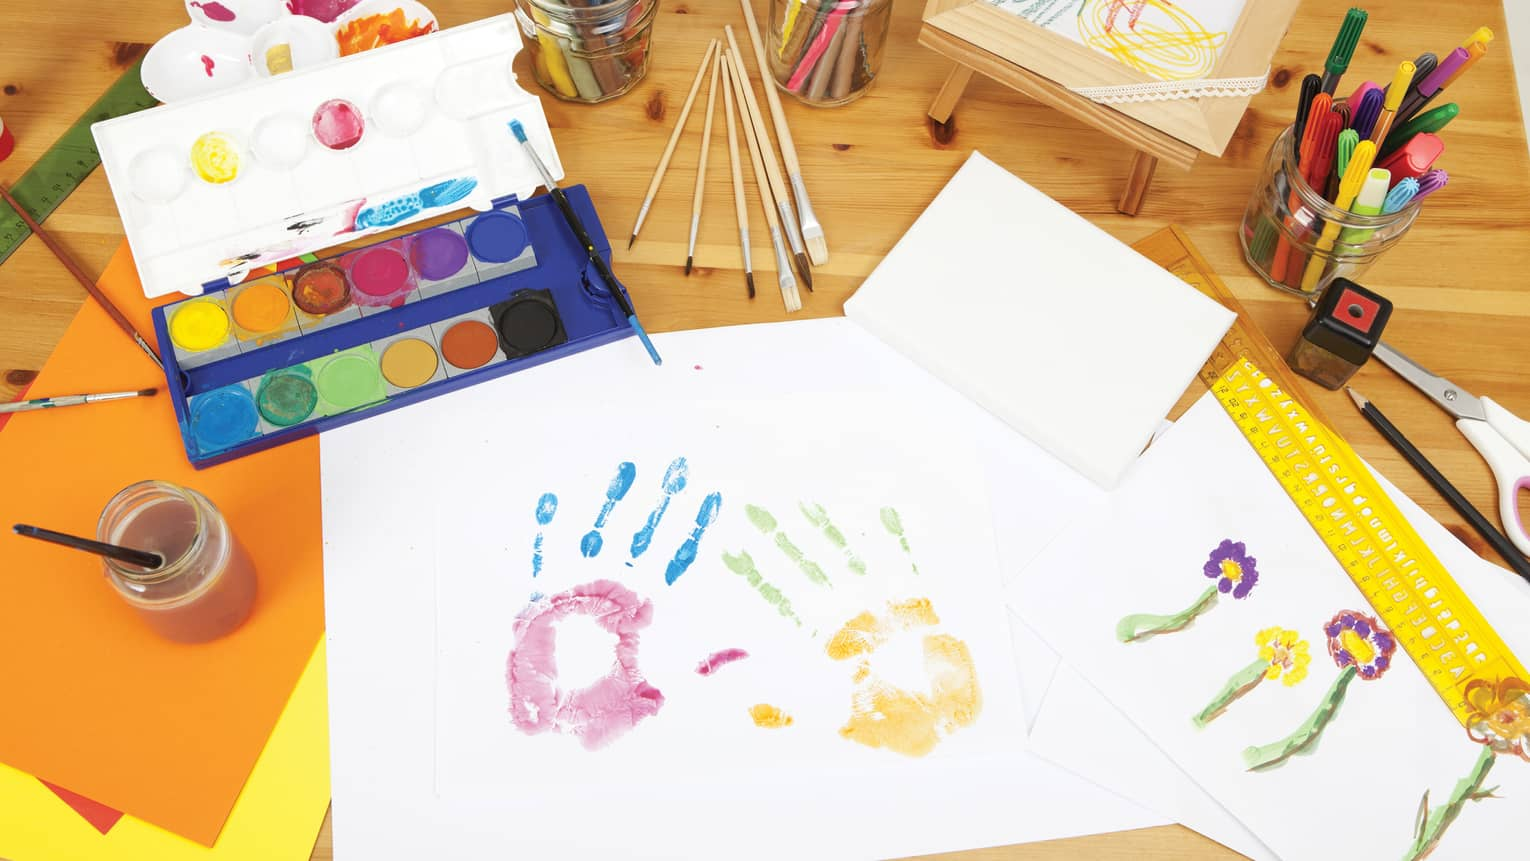 Two colourful paint handprints on paper next to tray of kid's paints on Kids Club craft table